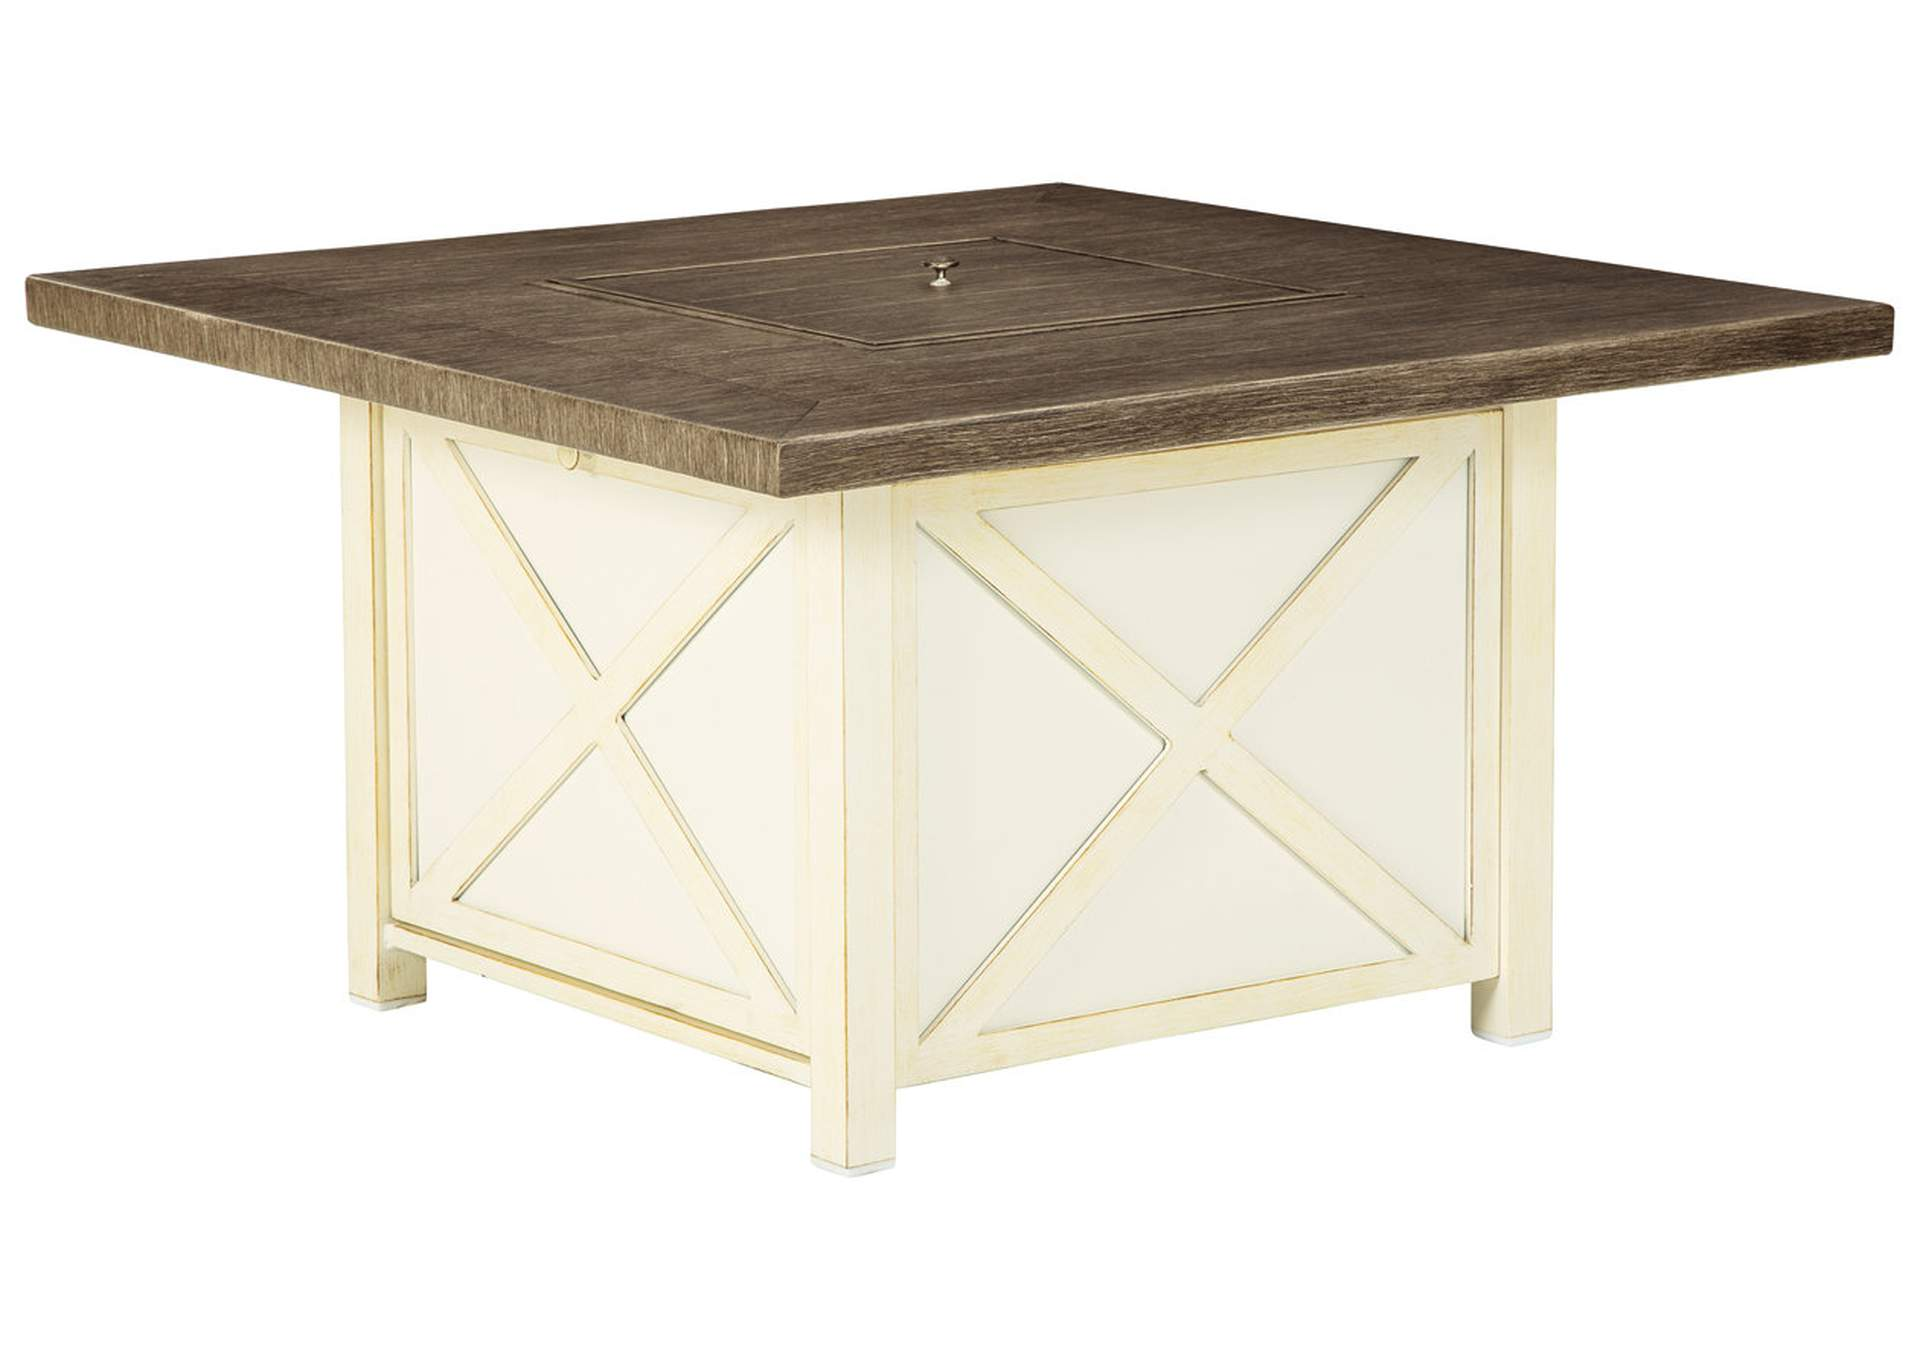 Preston Bay Antique White Fire Pit Table,Outdoor By Ashley